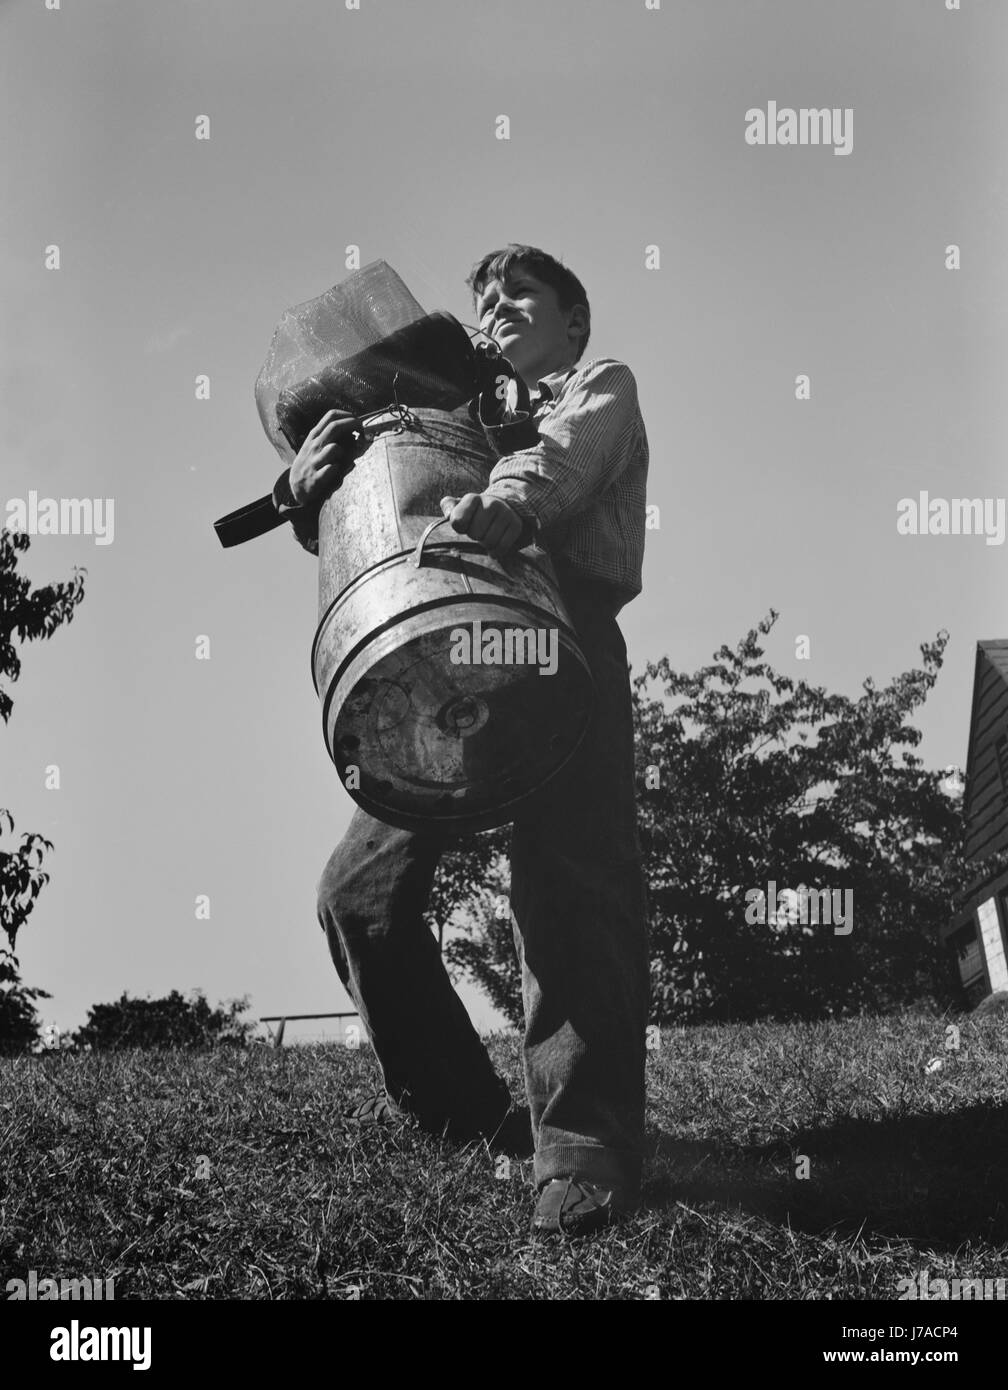 A young boy collects scrap for America's war industries, 1942. Stock Photo